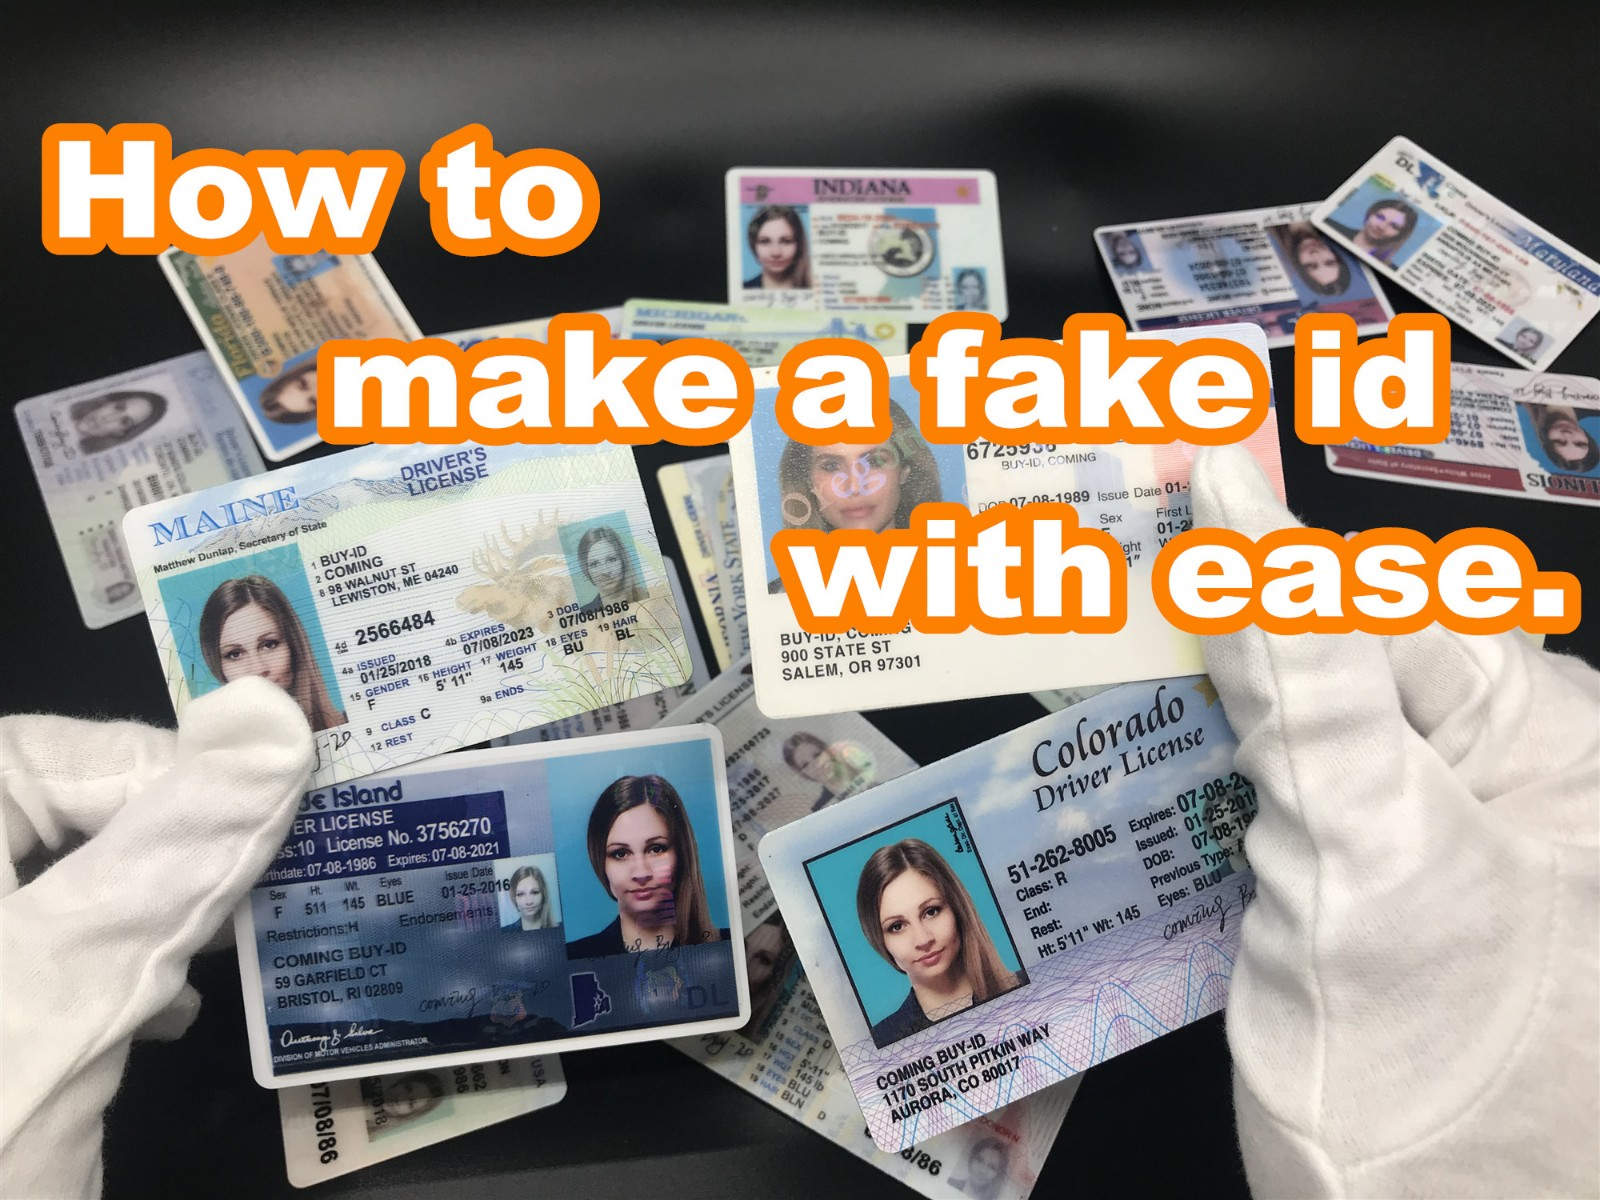 How to make a fake id with ease-Buy-id.com